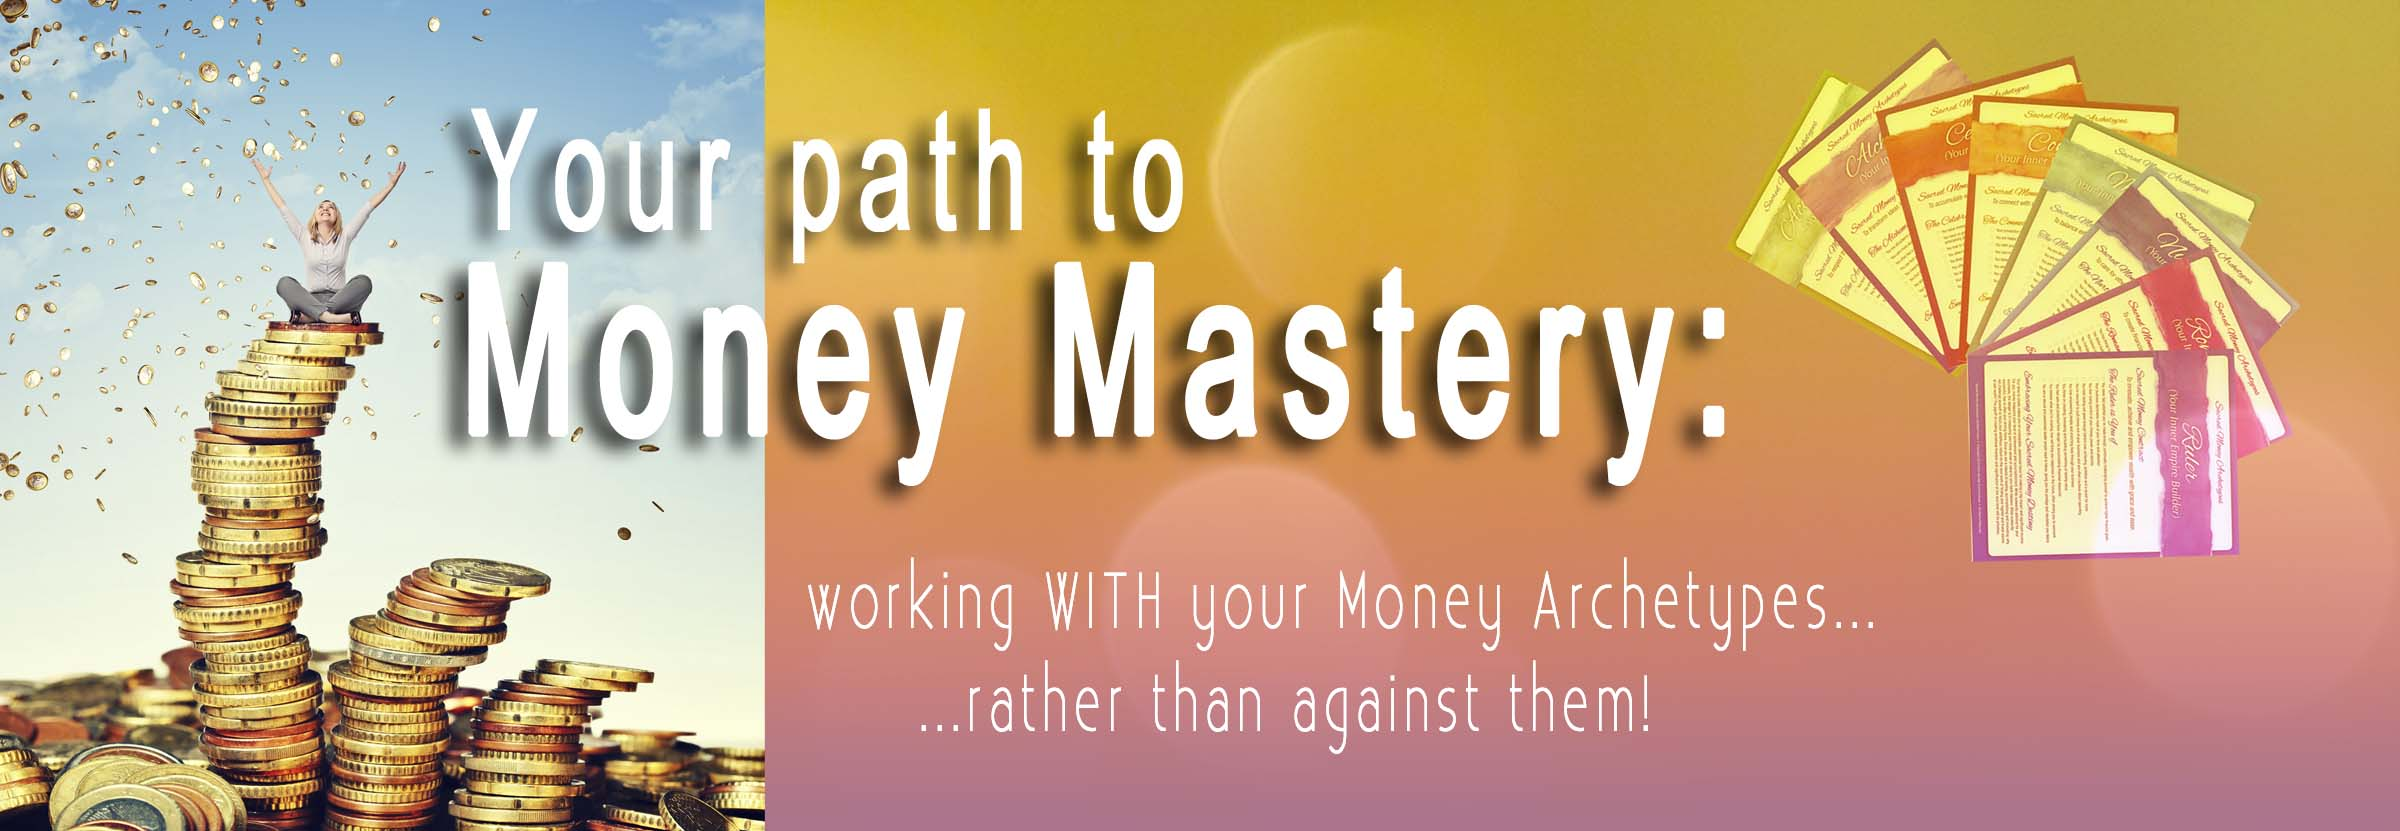 Your Path to Money Mastery